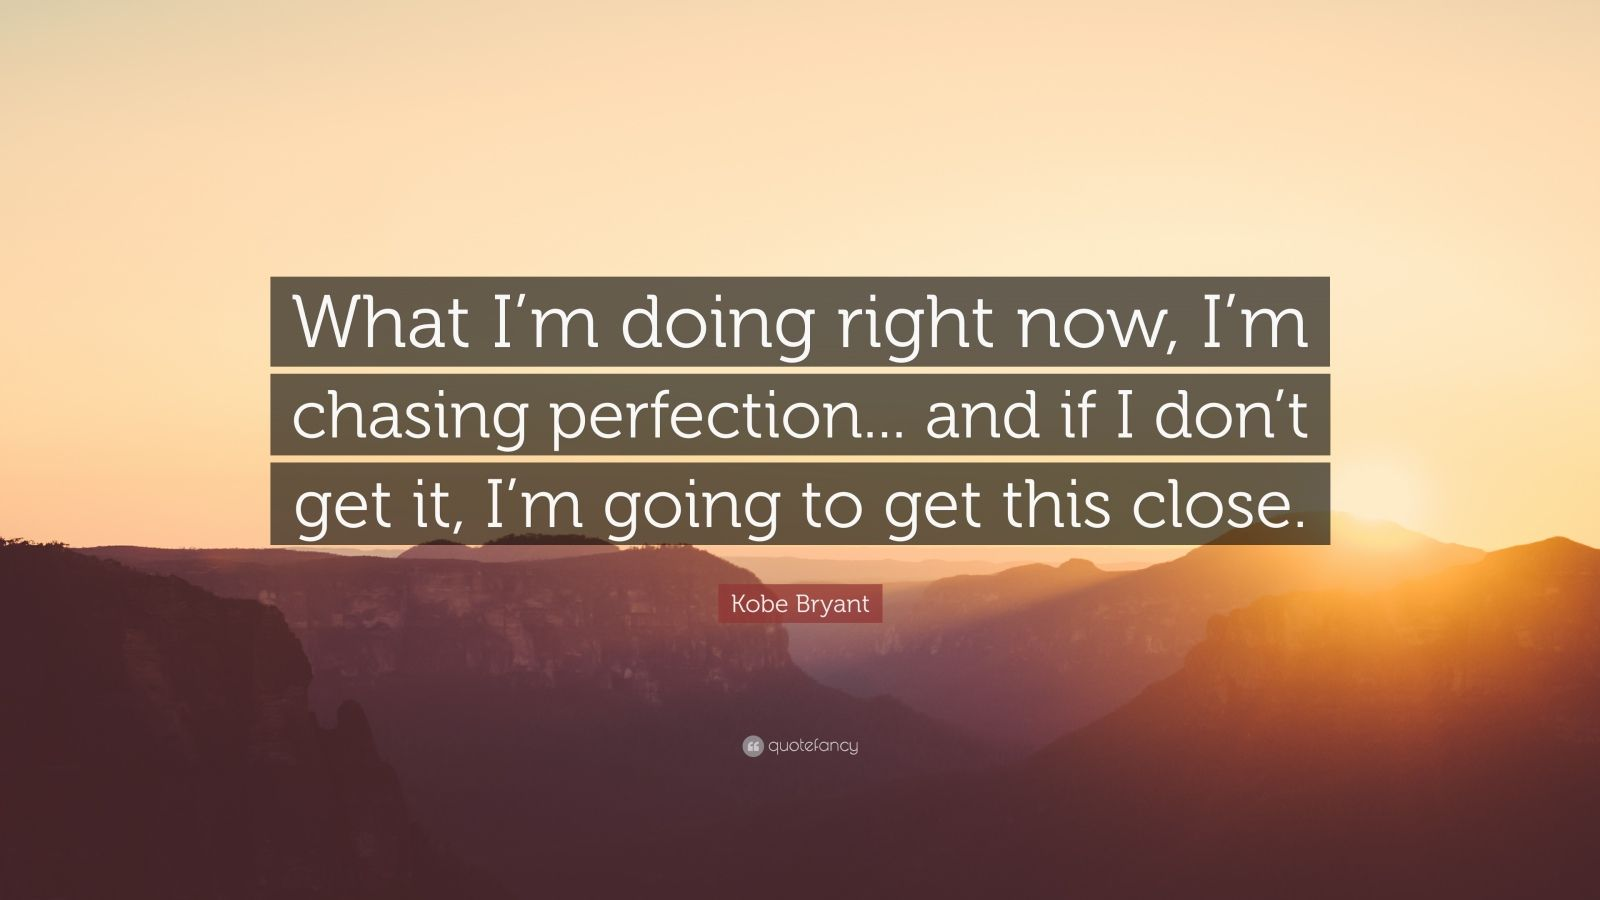 """Kobe Bryant Quote: """"What I'm doing right now, I'm chasing perfection... and if I don't get it, I'm going to get this close."""""""